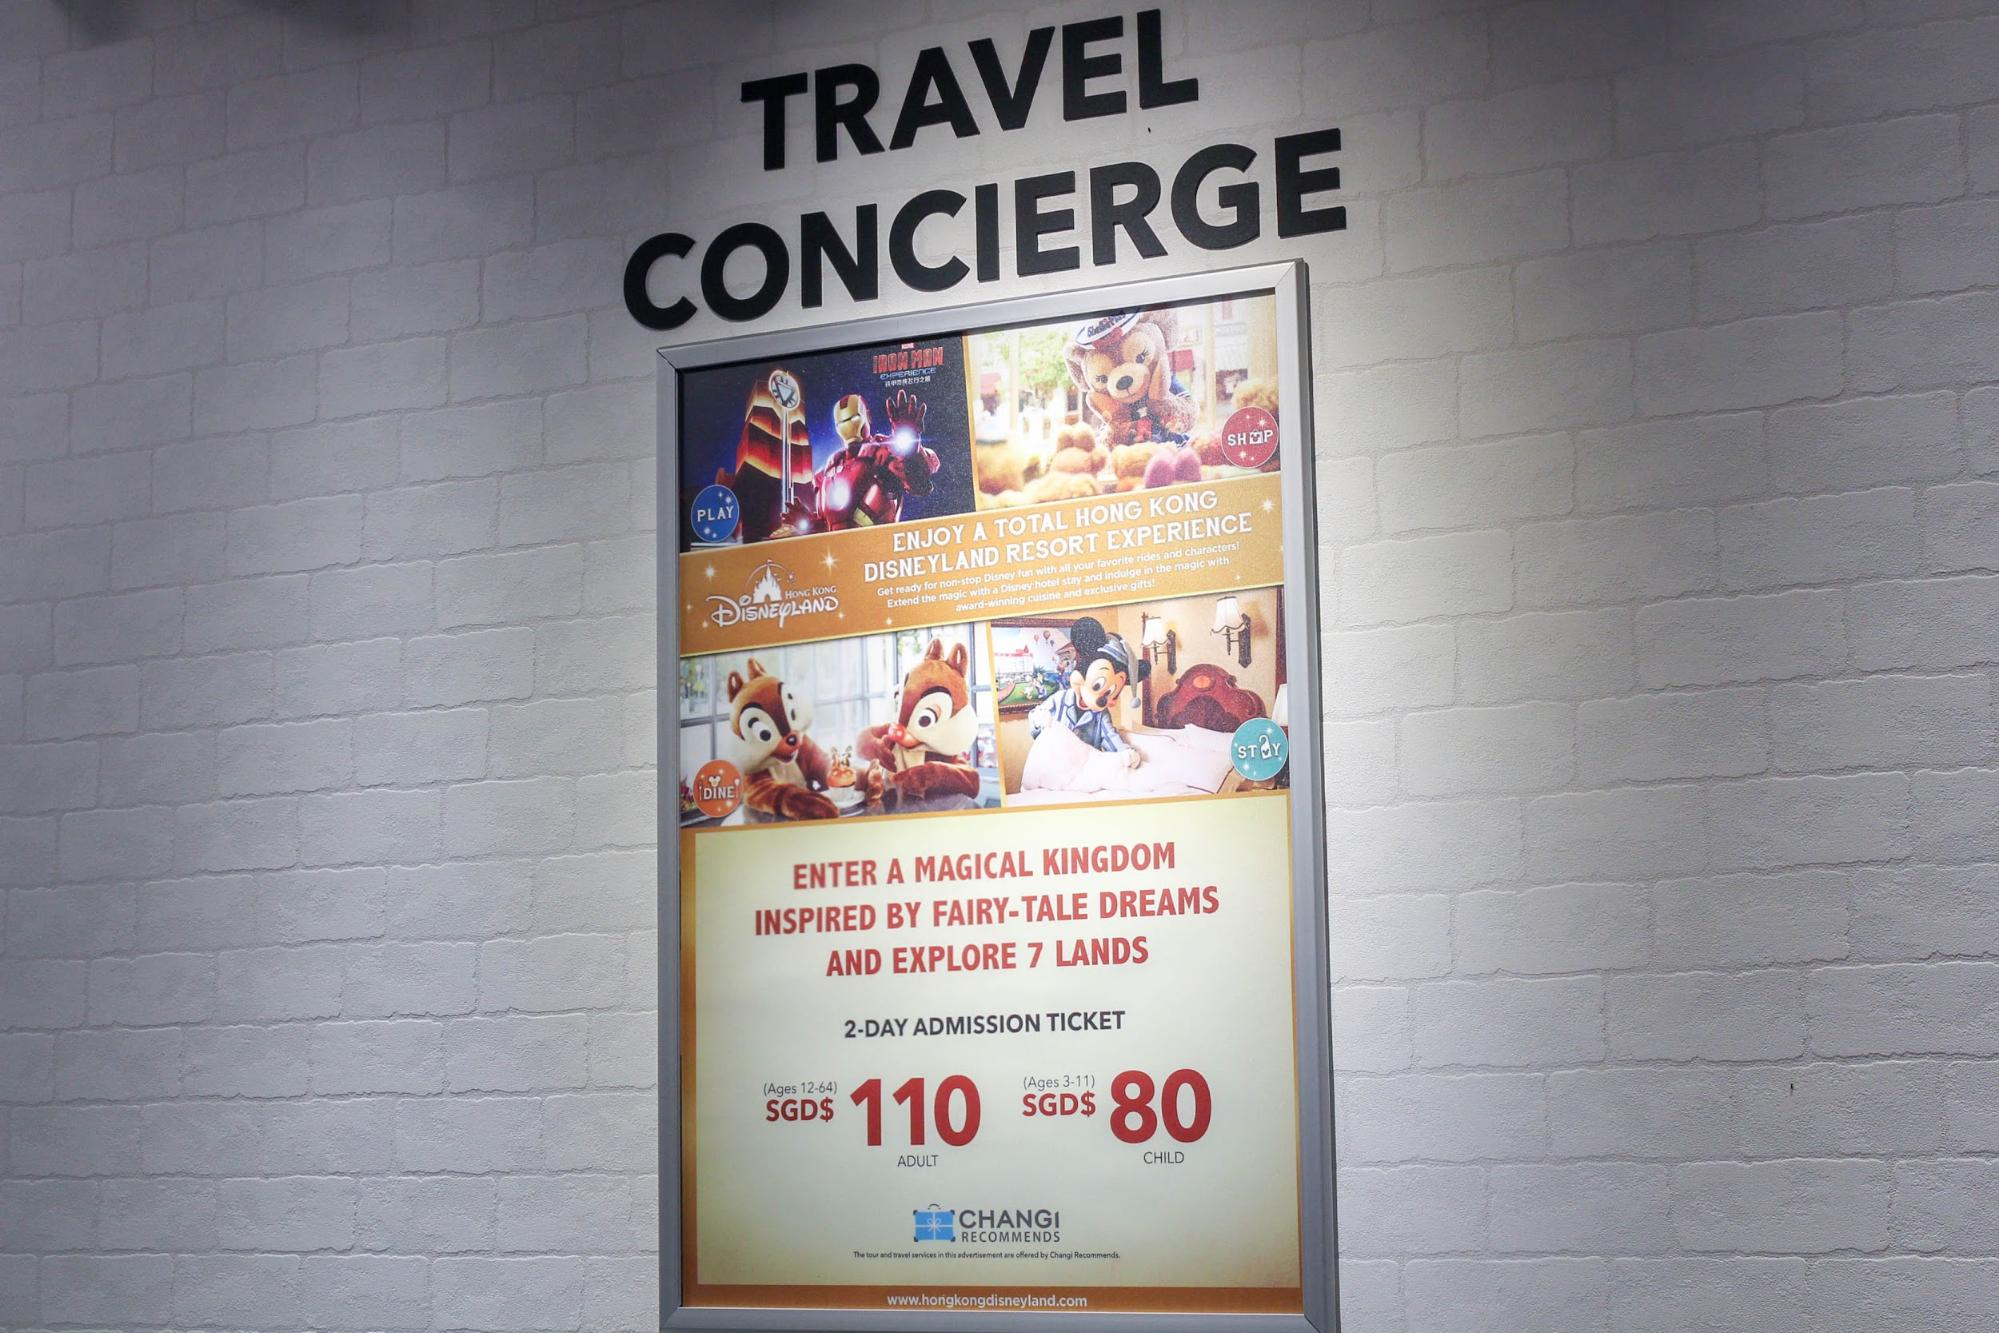 Travel Concierge at HyfeCafe